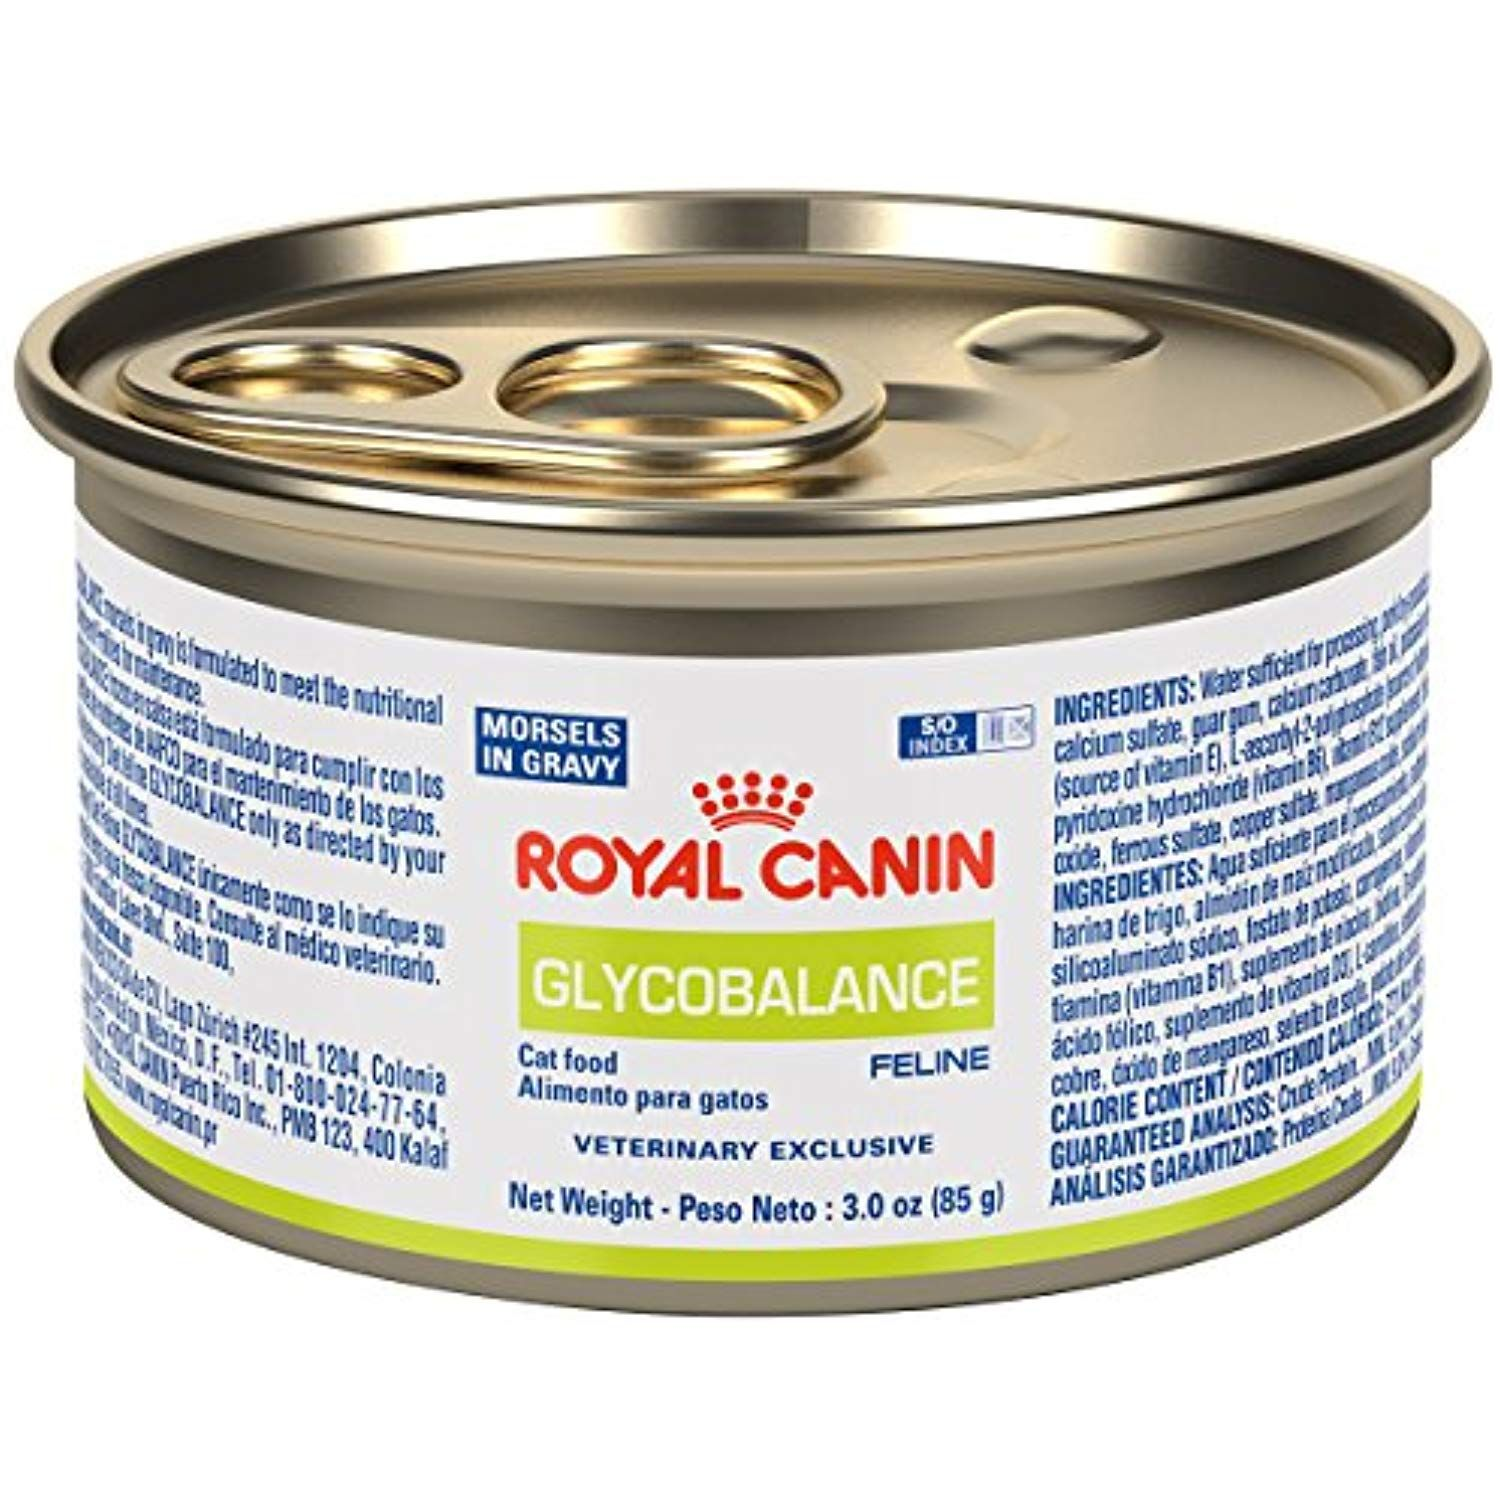 ROYAL CANIN Feline Glycobalance Morsels In Gravy Can (24/3